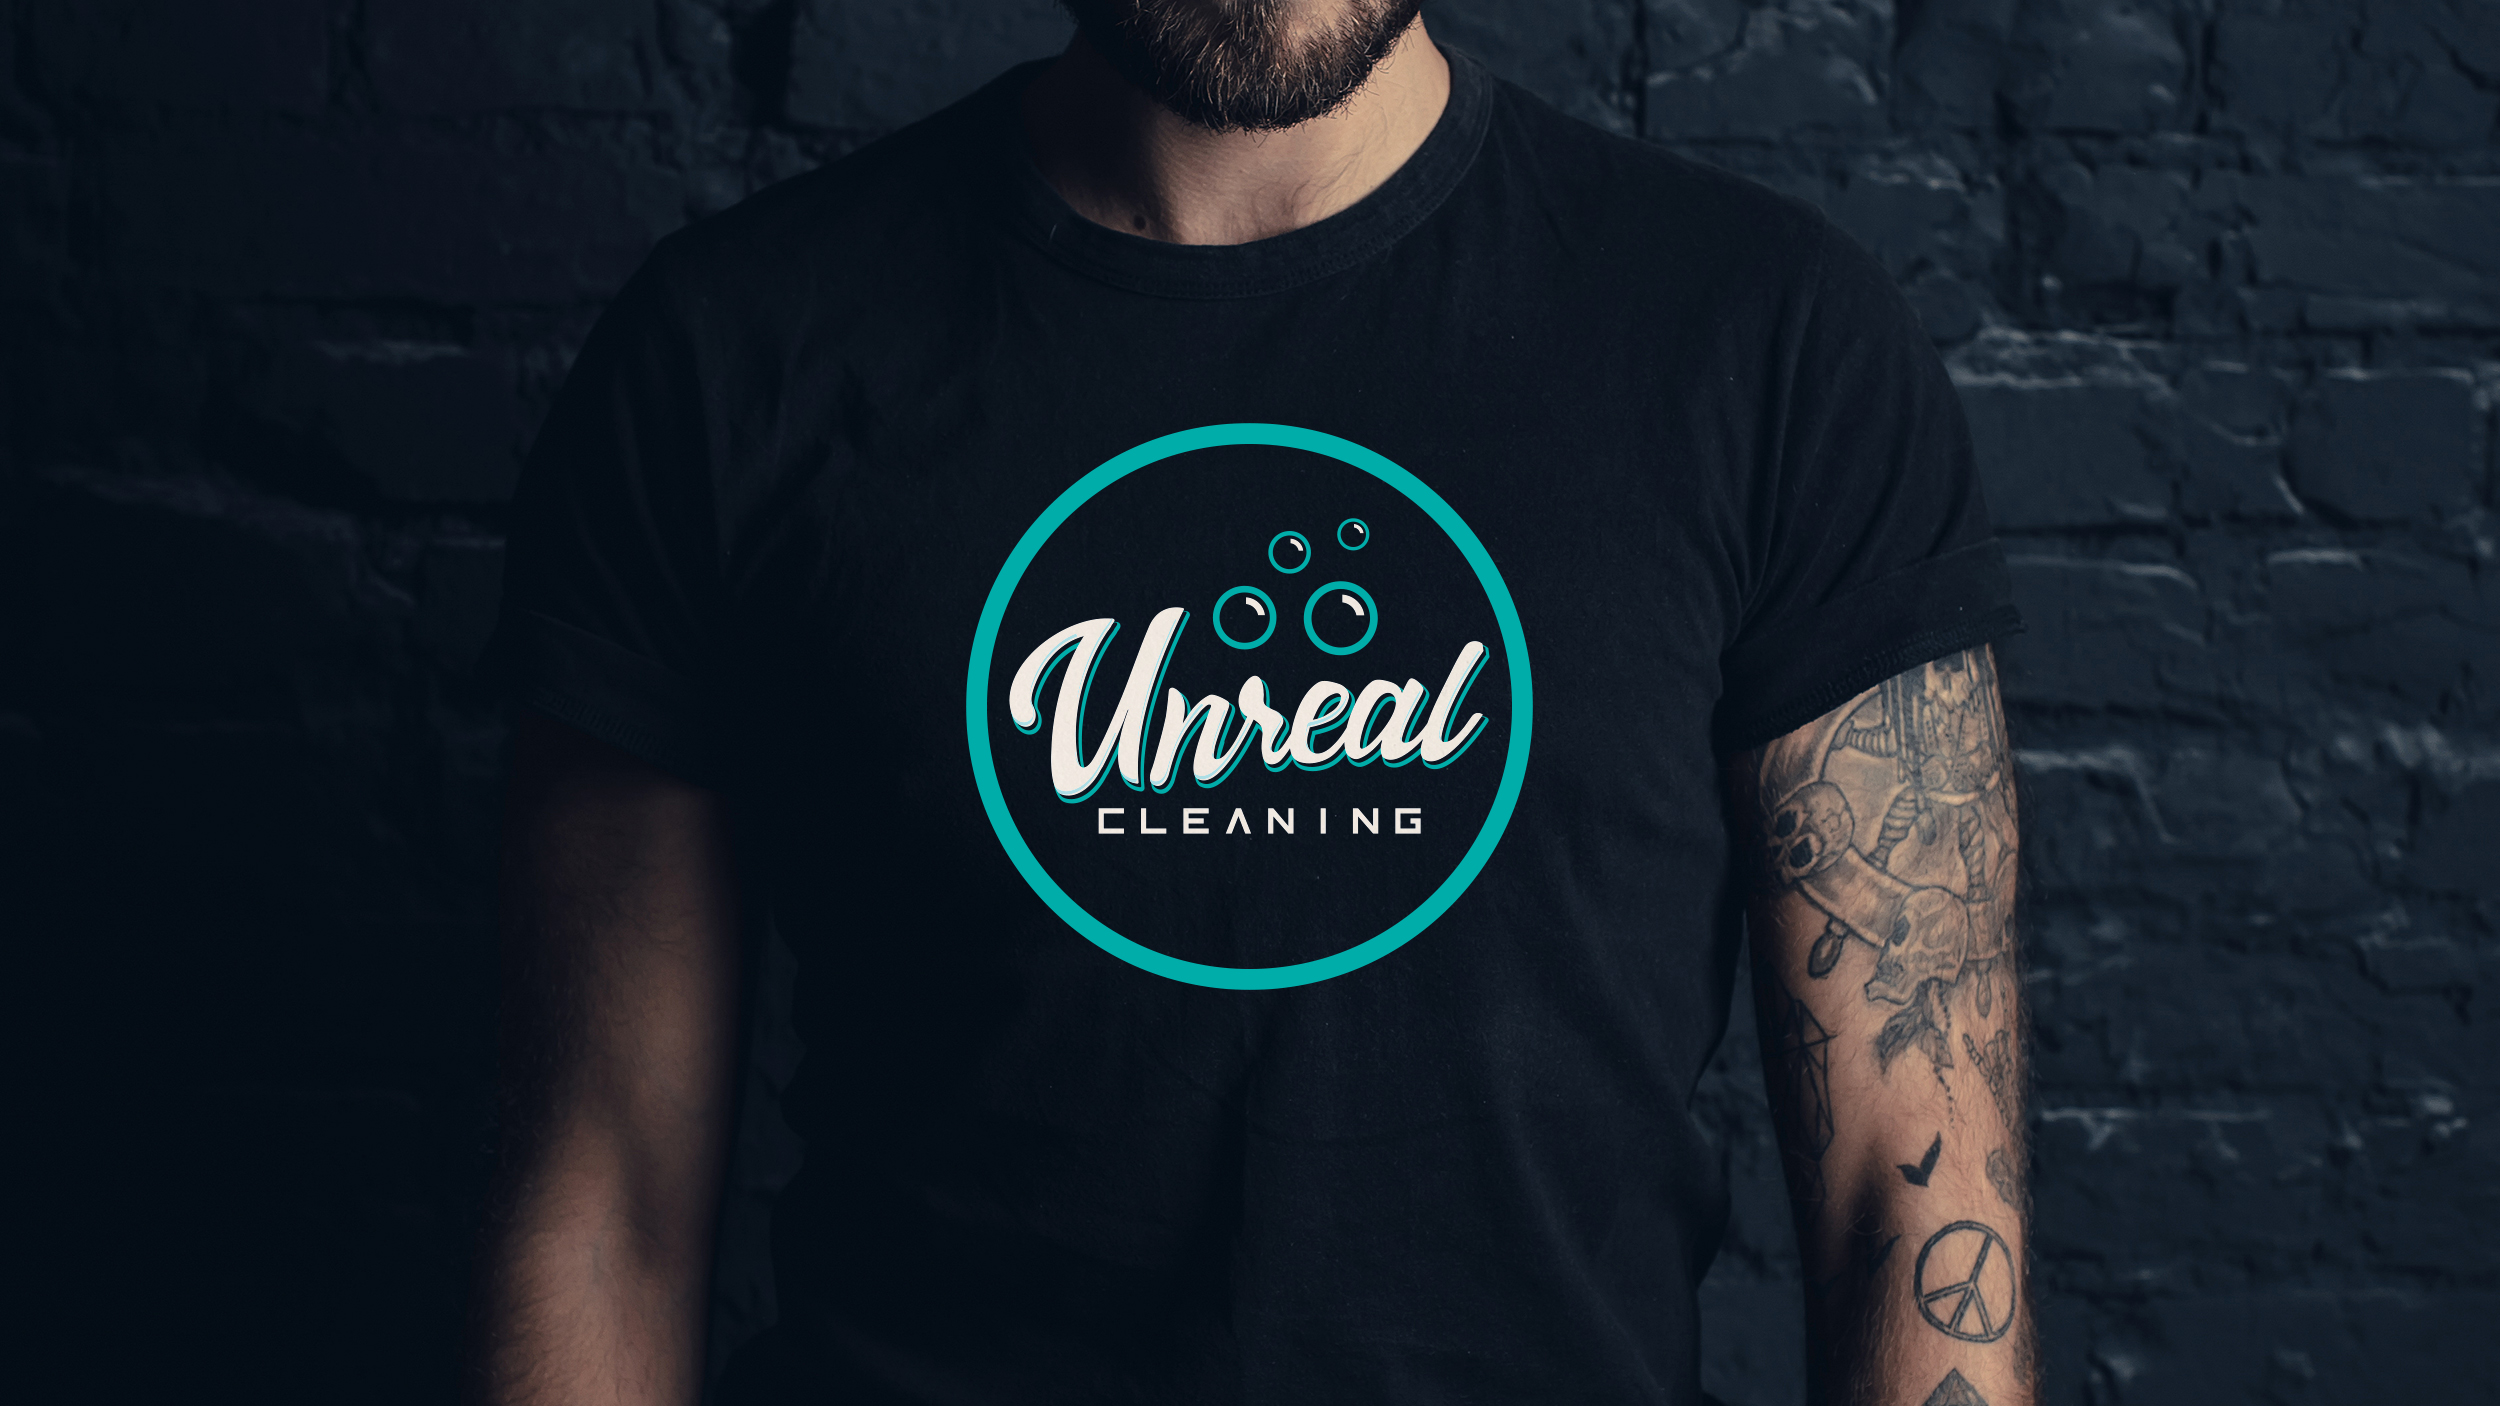 Unreal Cleaning T-Shirt Design  Copyright © Afro Boy Productions. All rights reserved.